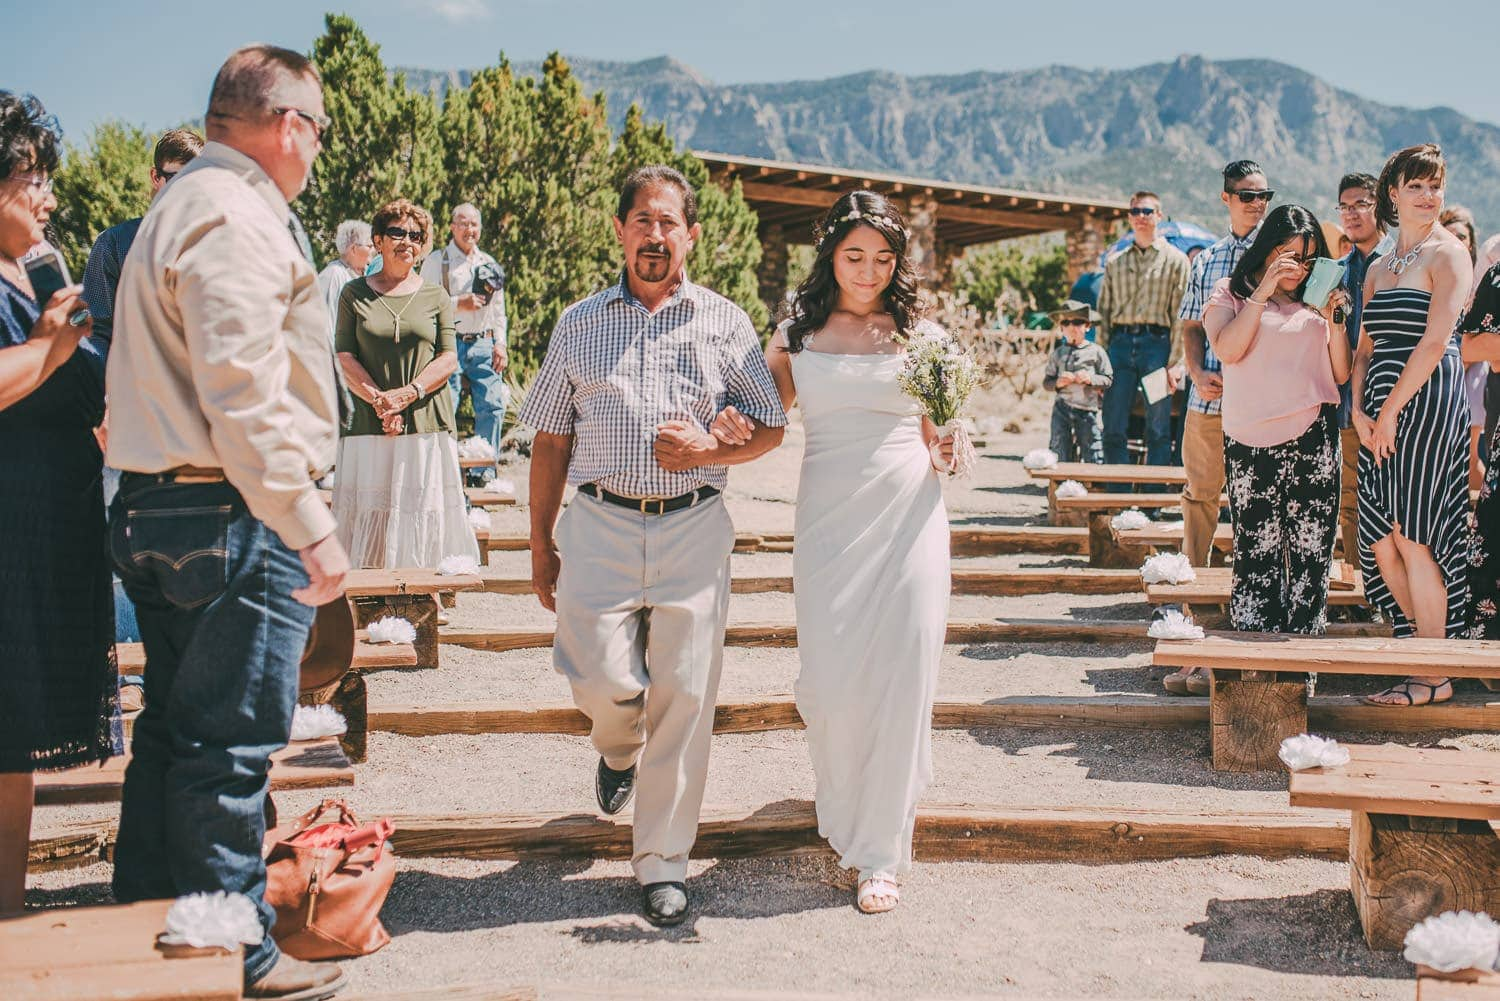 Father of the bride escorting her down the aisle. The Sandia Mountains are seen in the background.